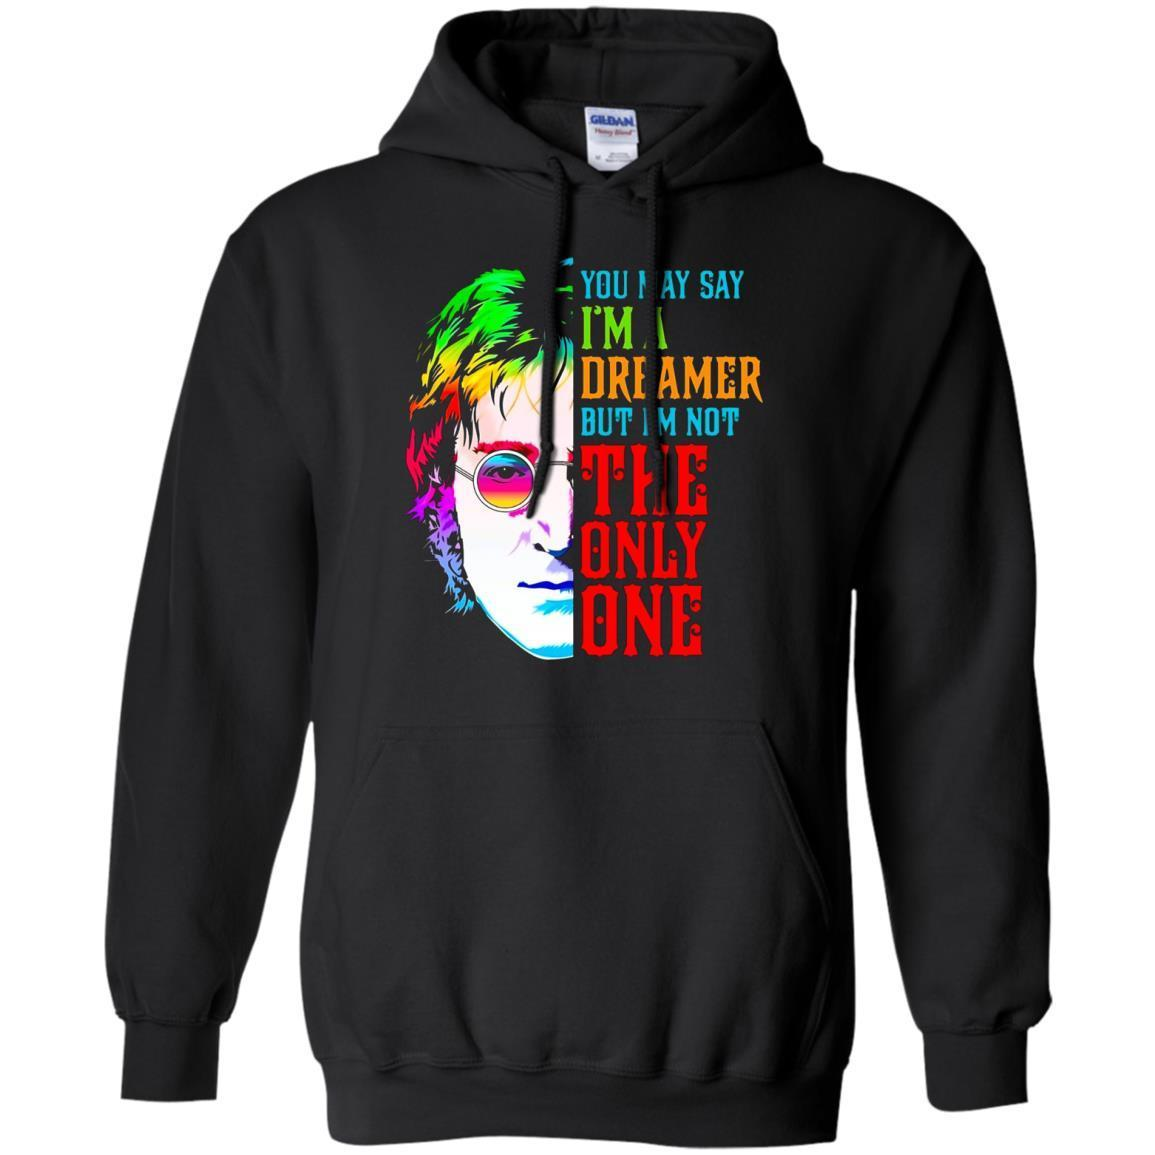 You May Say I'm Dreamer But I'm Not The Only One – Pullover Hoodie